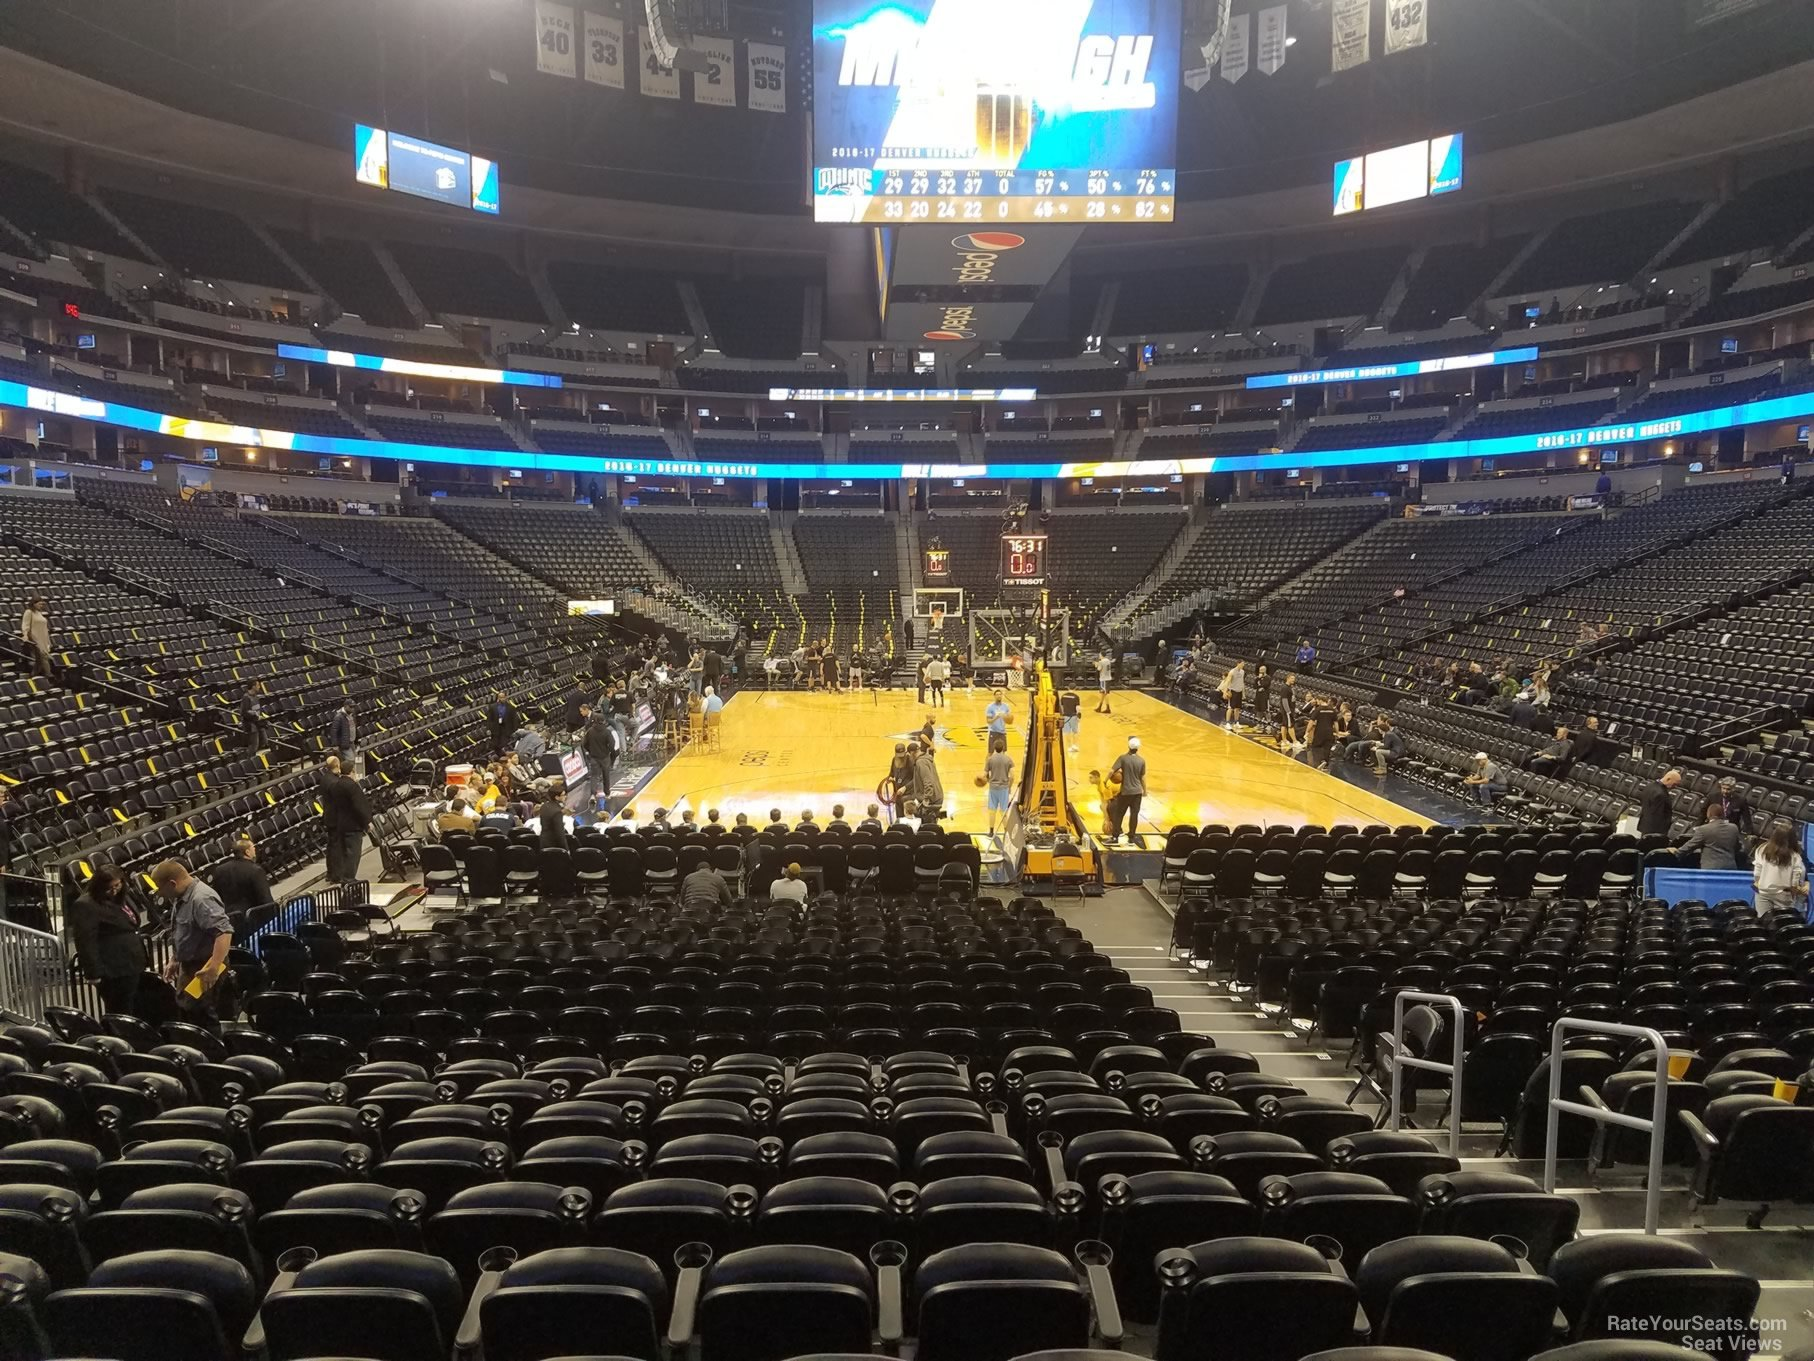 Denver Nuggets Seat View for Pepsi Center Section 138, Row 11